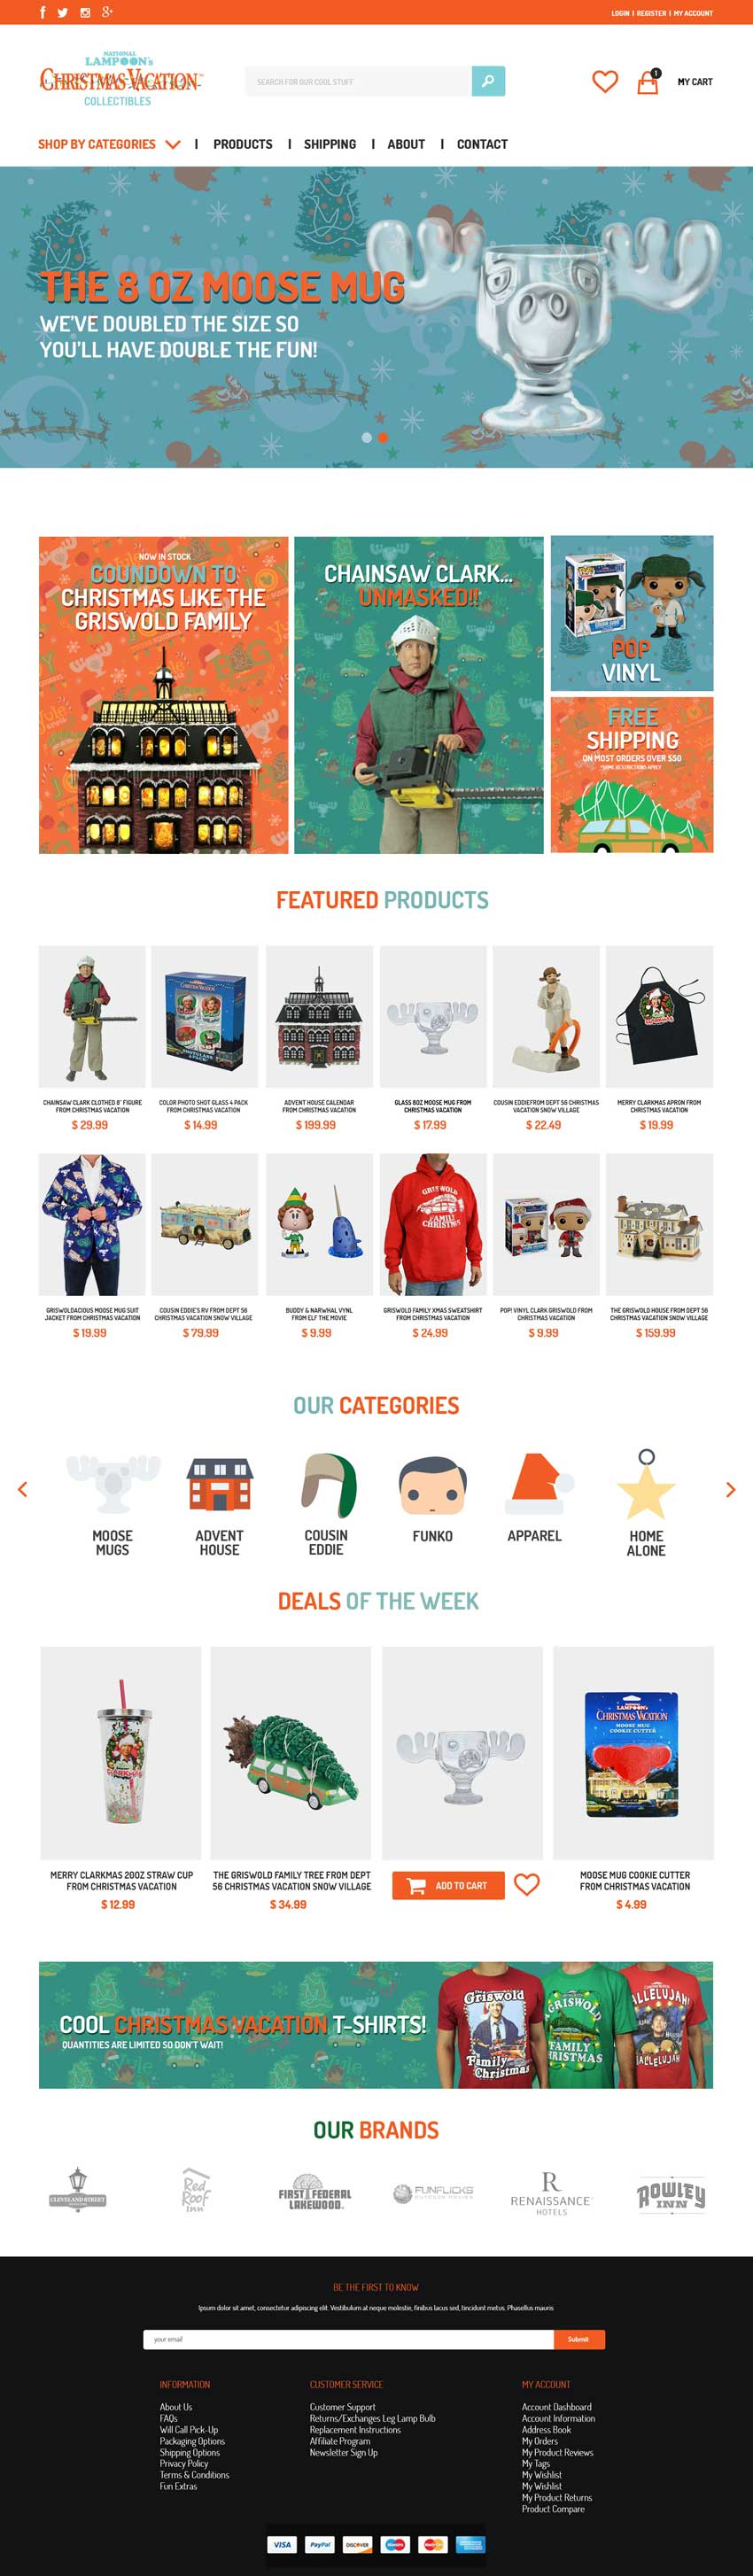 Image of National Lampoon's Christmas Vacation Collectibles website design